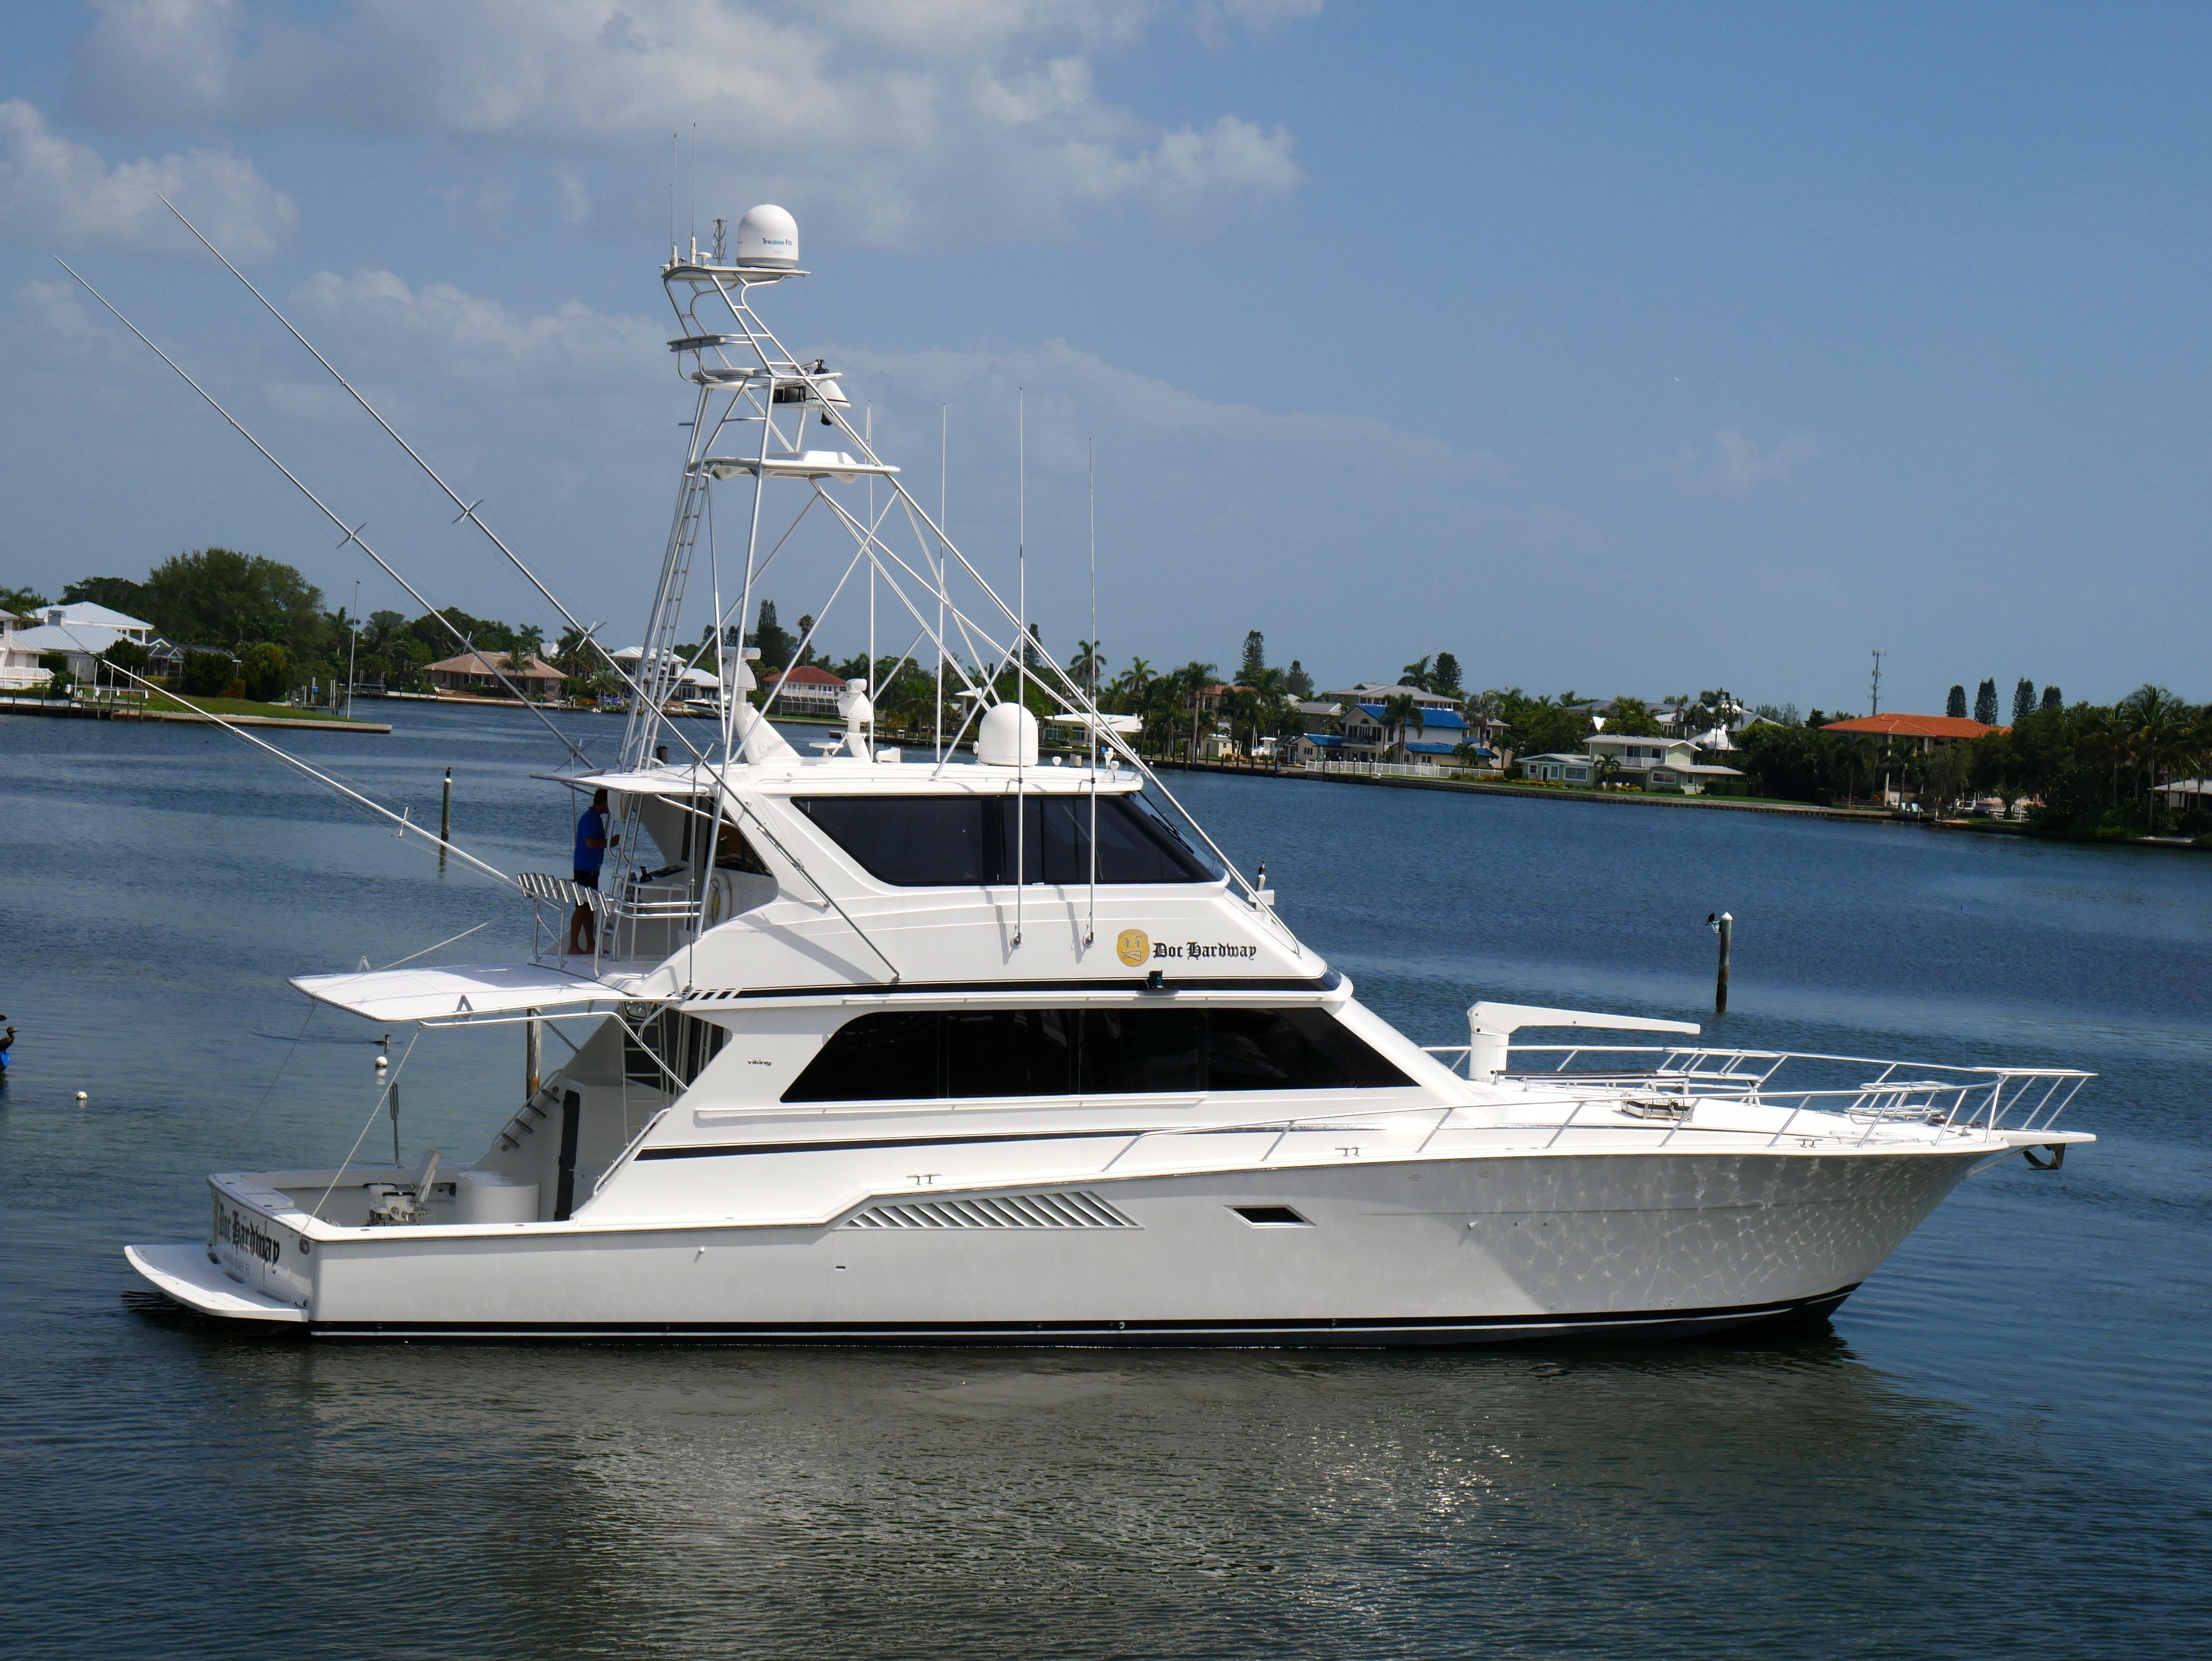 72 viking 1997 doc hardway for sale in anna maria florida for 72 hatteras motor yacht for sale